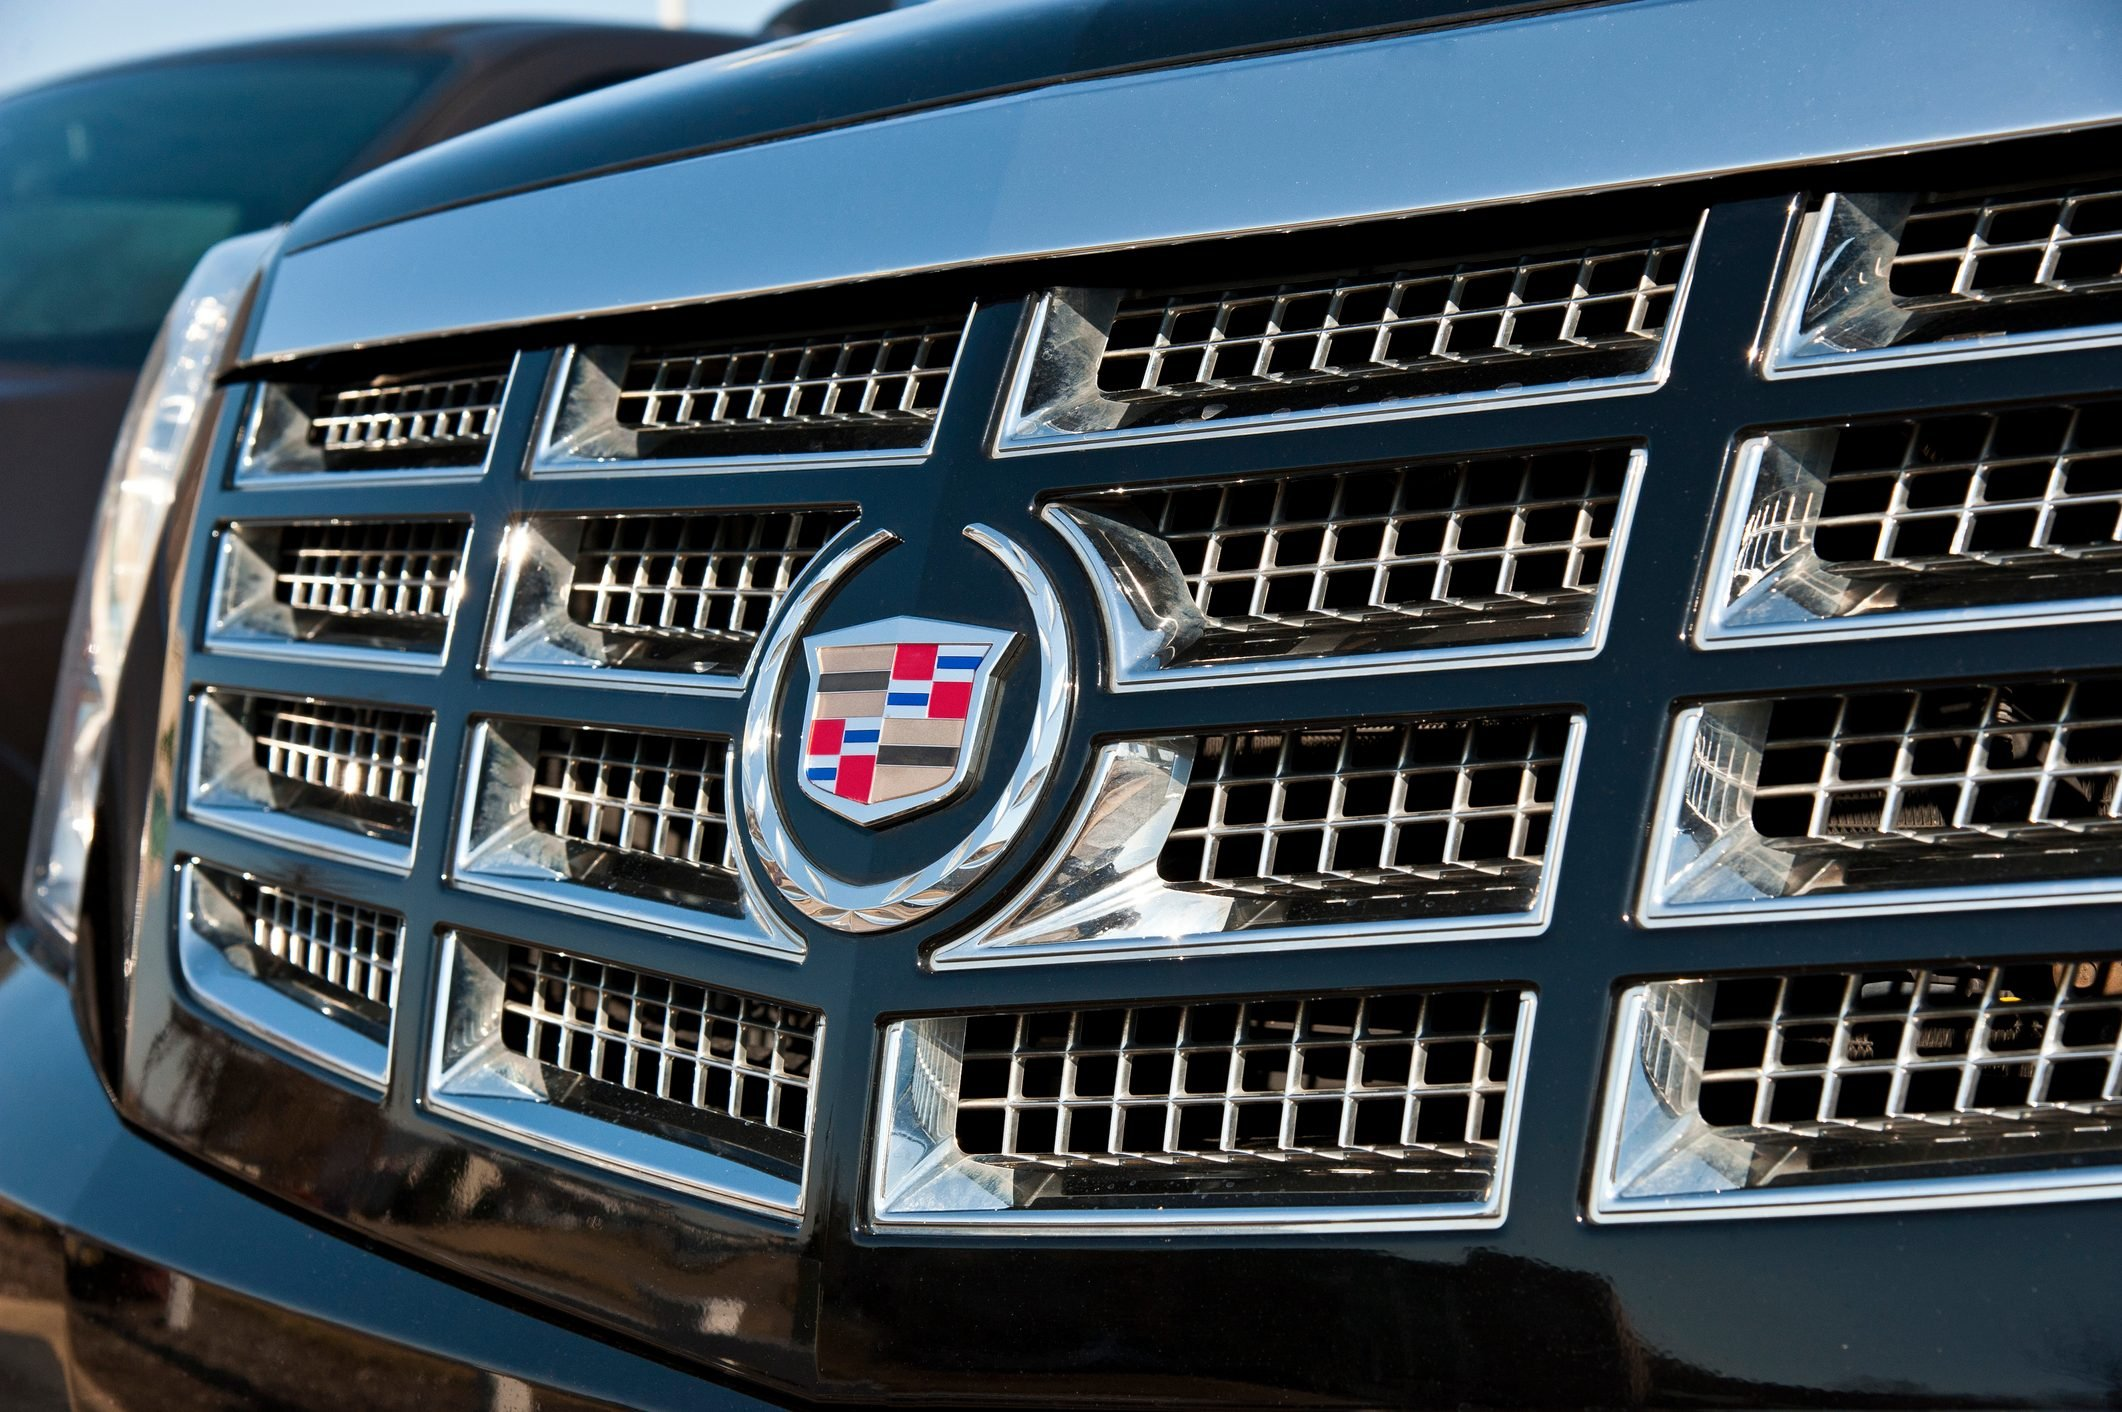 Front Grille of Cadillac Escalade